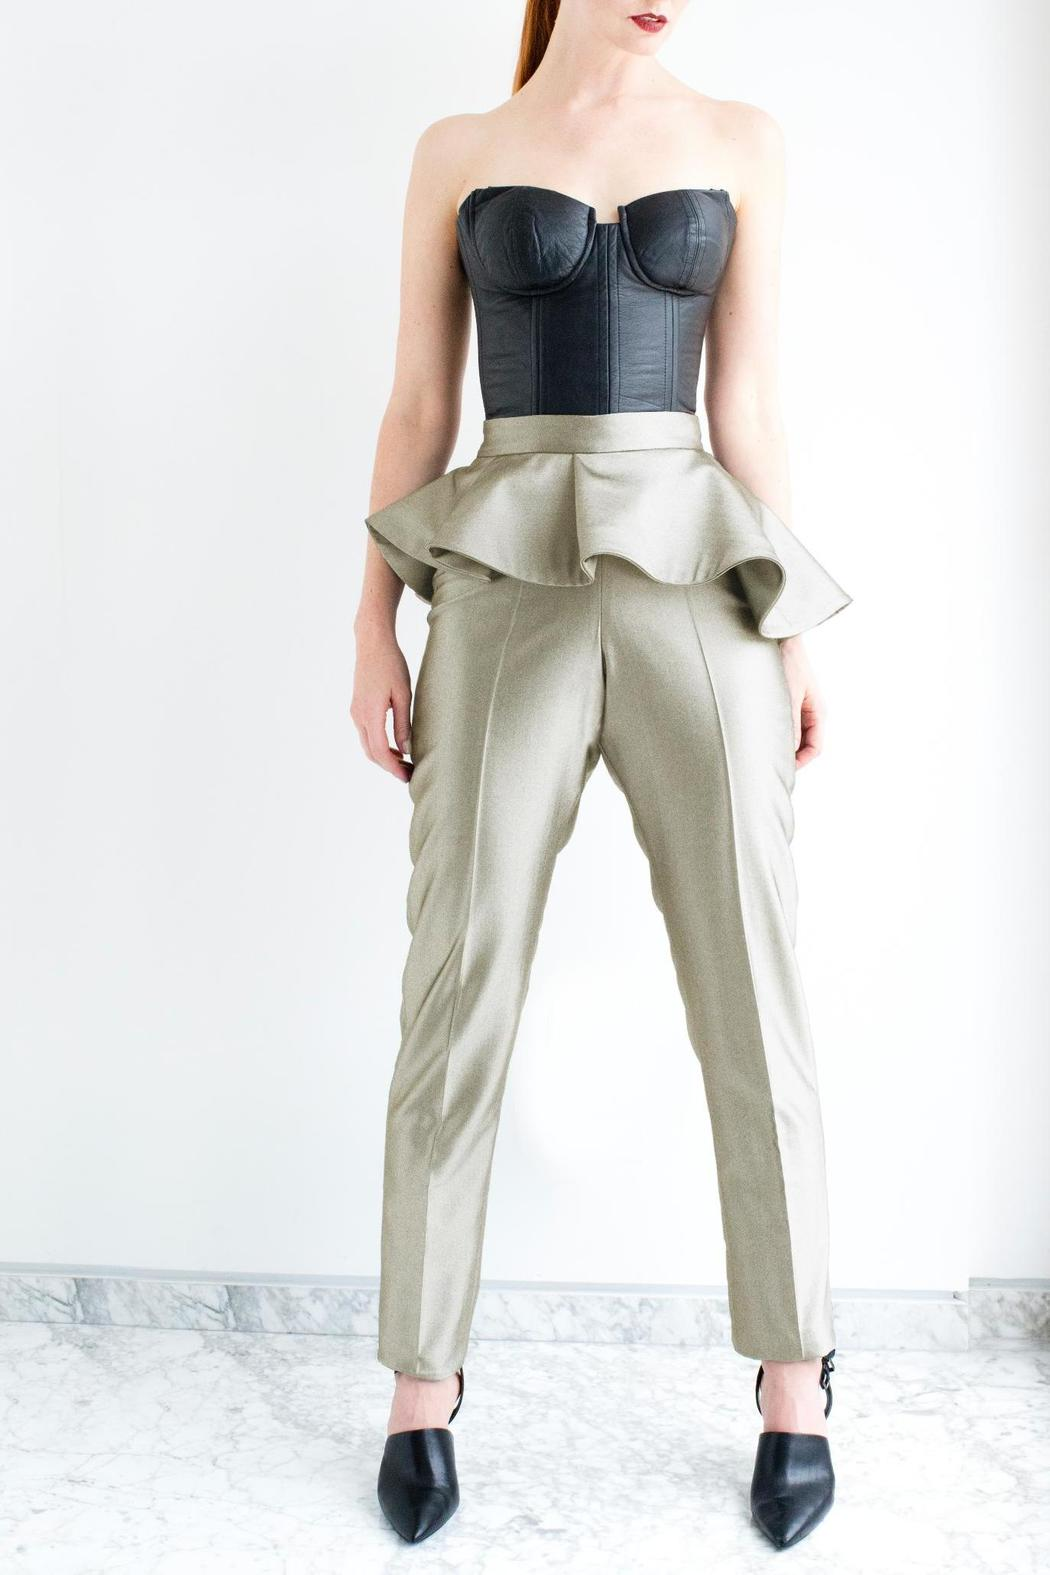 2cc14c7a07b Viesca y Viesca High Waisted Peplum Pants from Mexico — Shoptiques